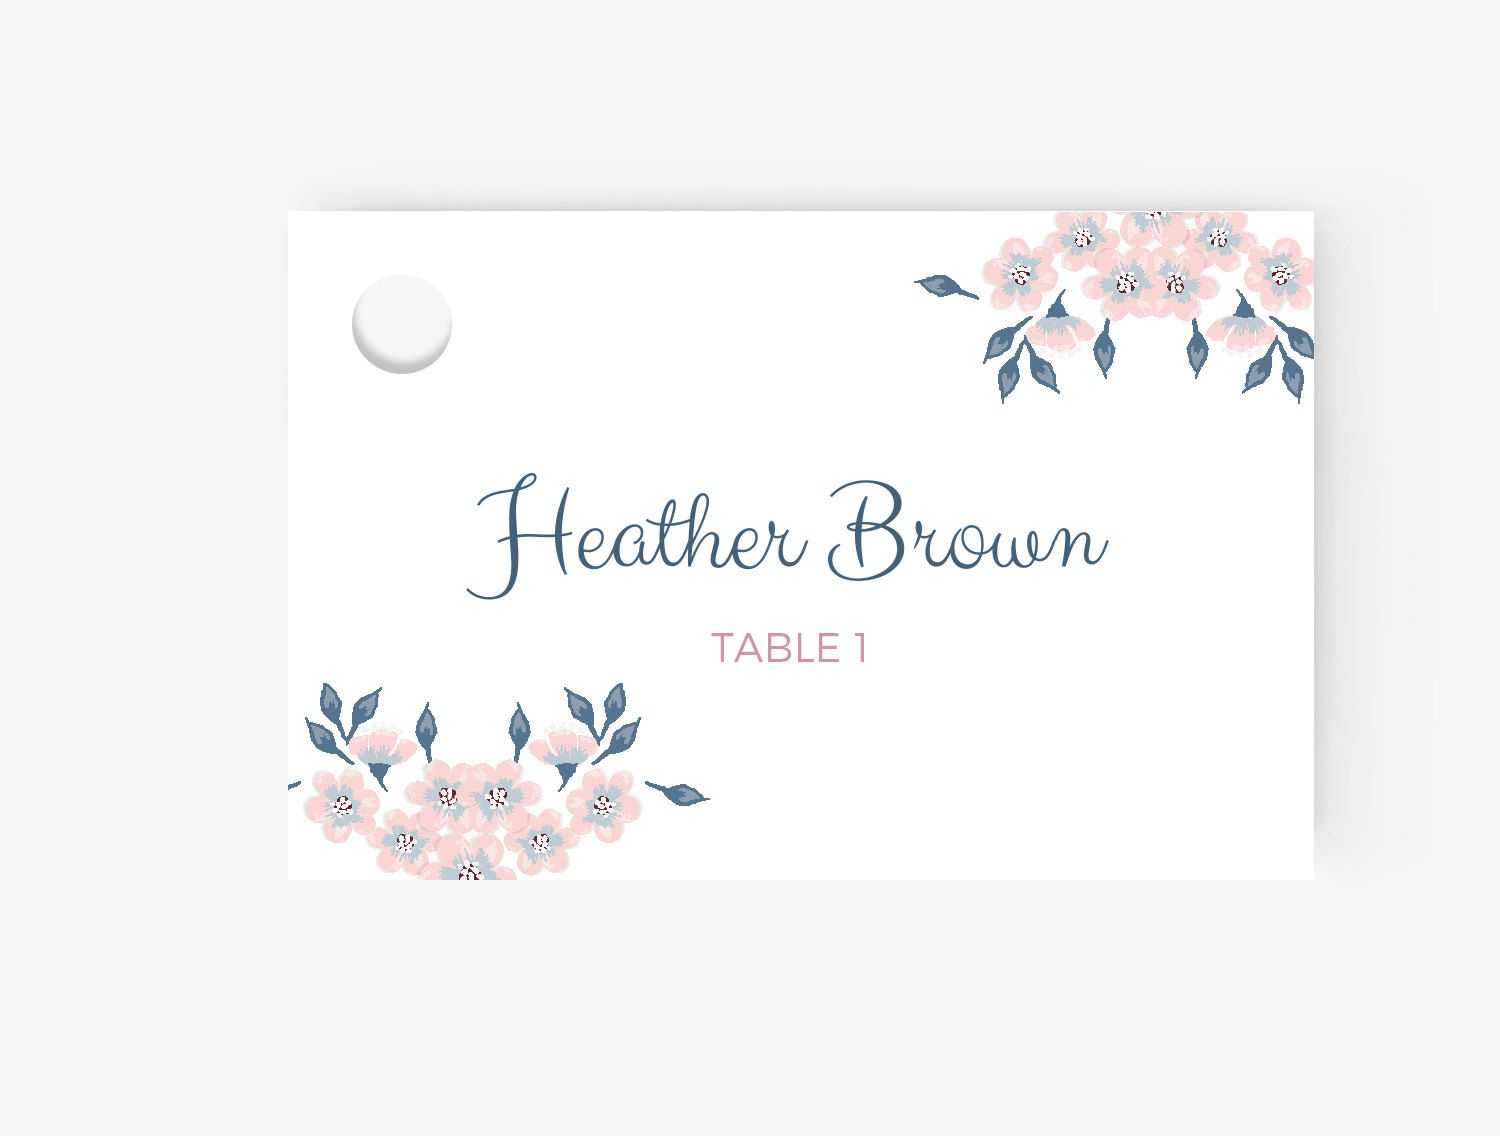 011 Place Cards Template Word Ideas Marvelous Name Christmas Regarding Wedding Place Card Template Free Word